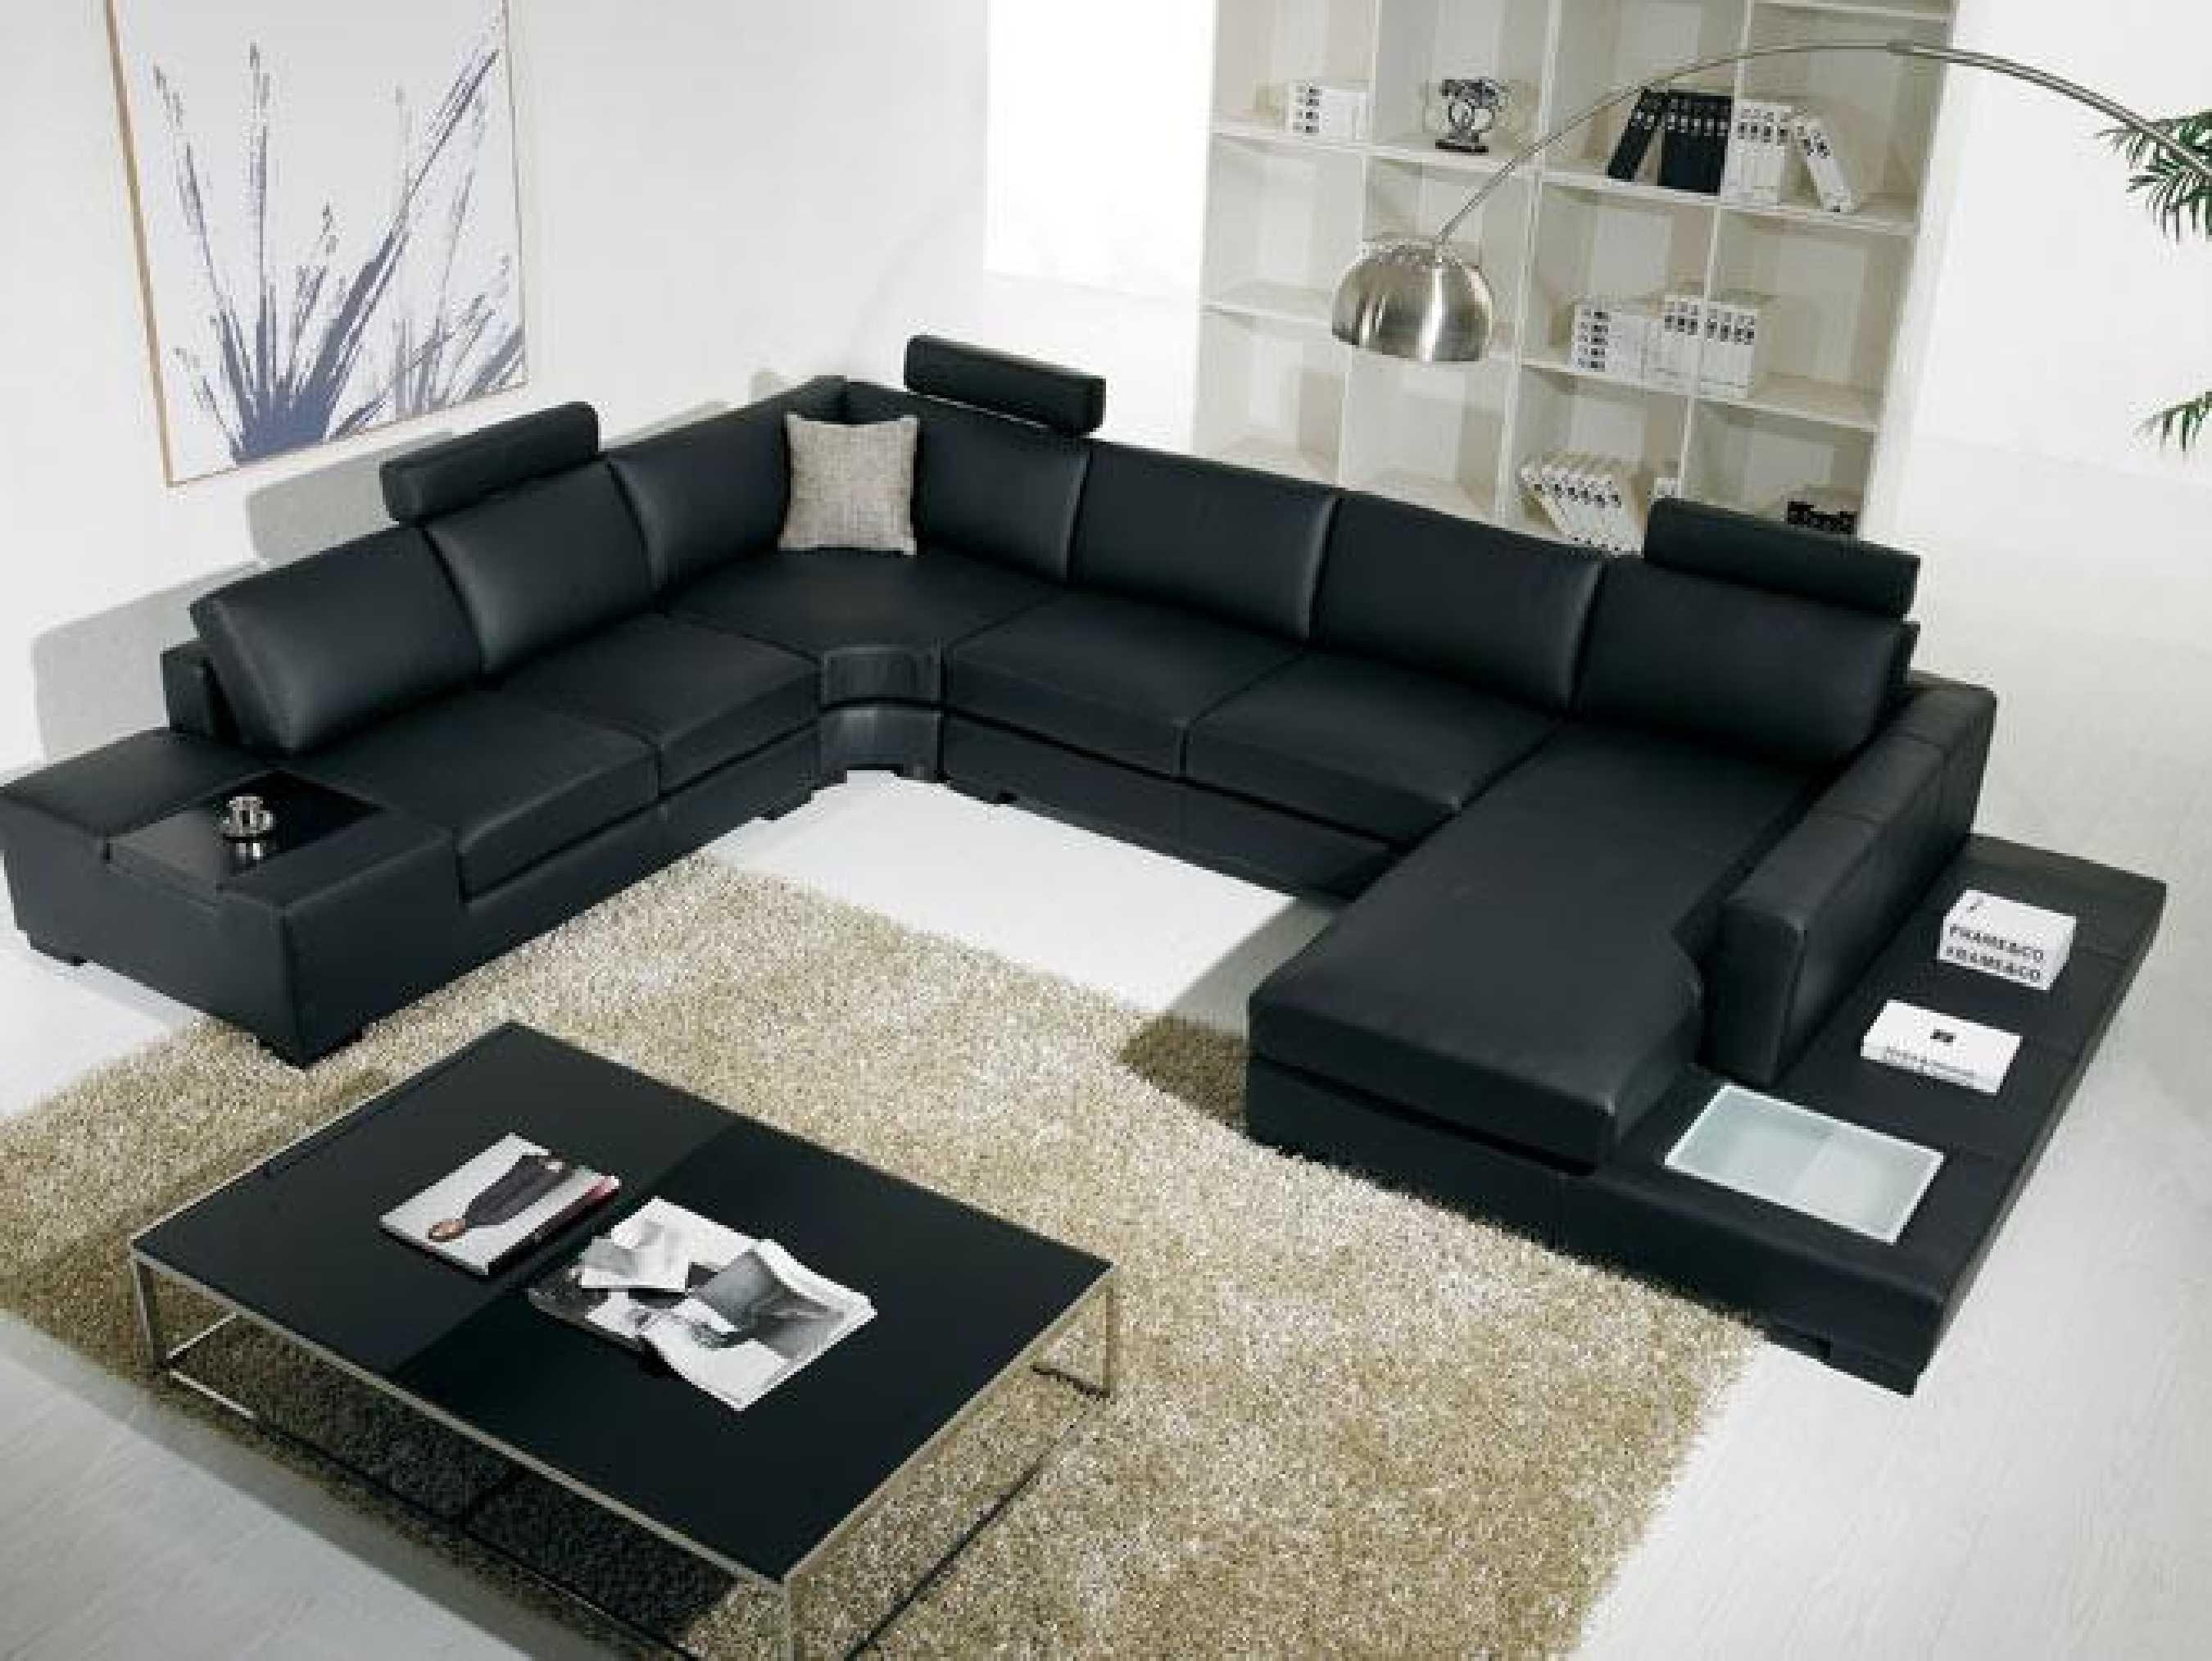 Black Modern Sectional Sofa With End Table Corner – S3Net With Regard To Black Modern Sectional Sofas (Image 3 of 20)